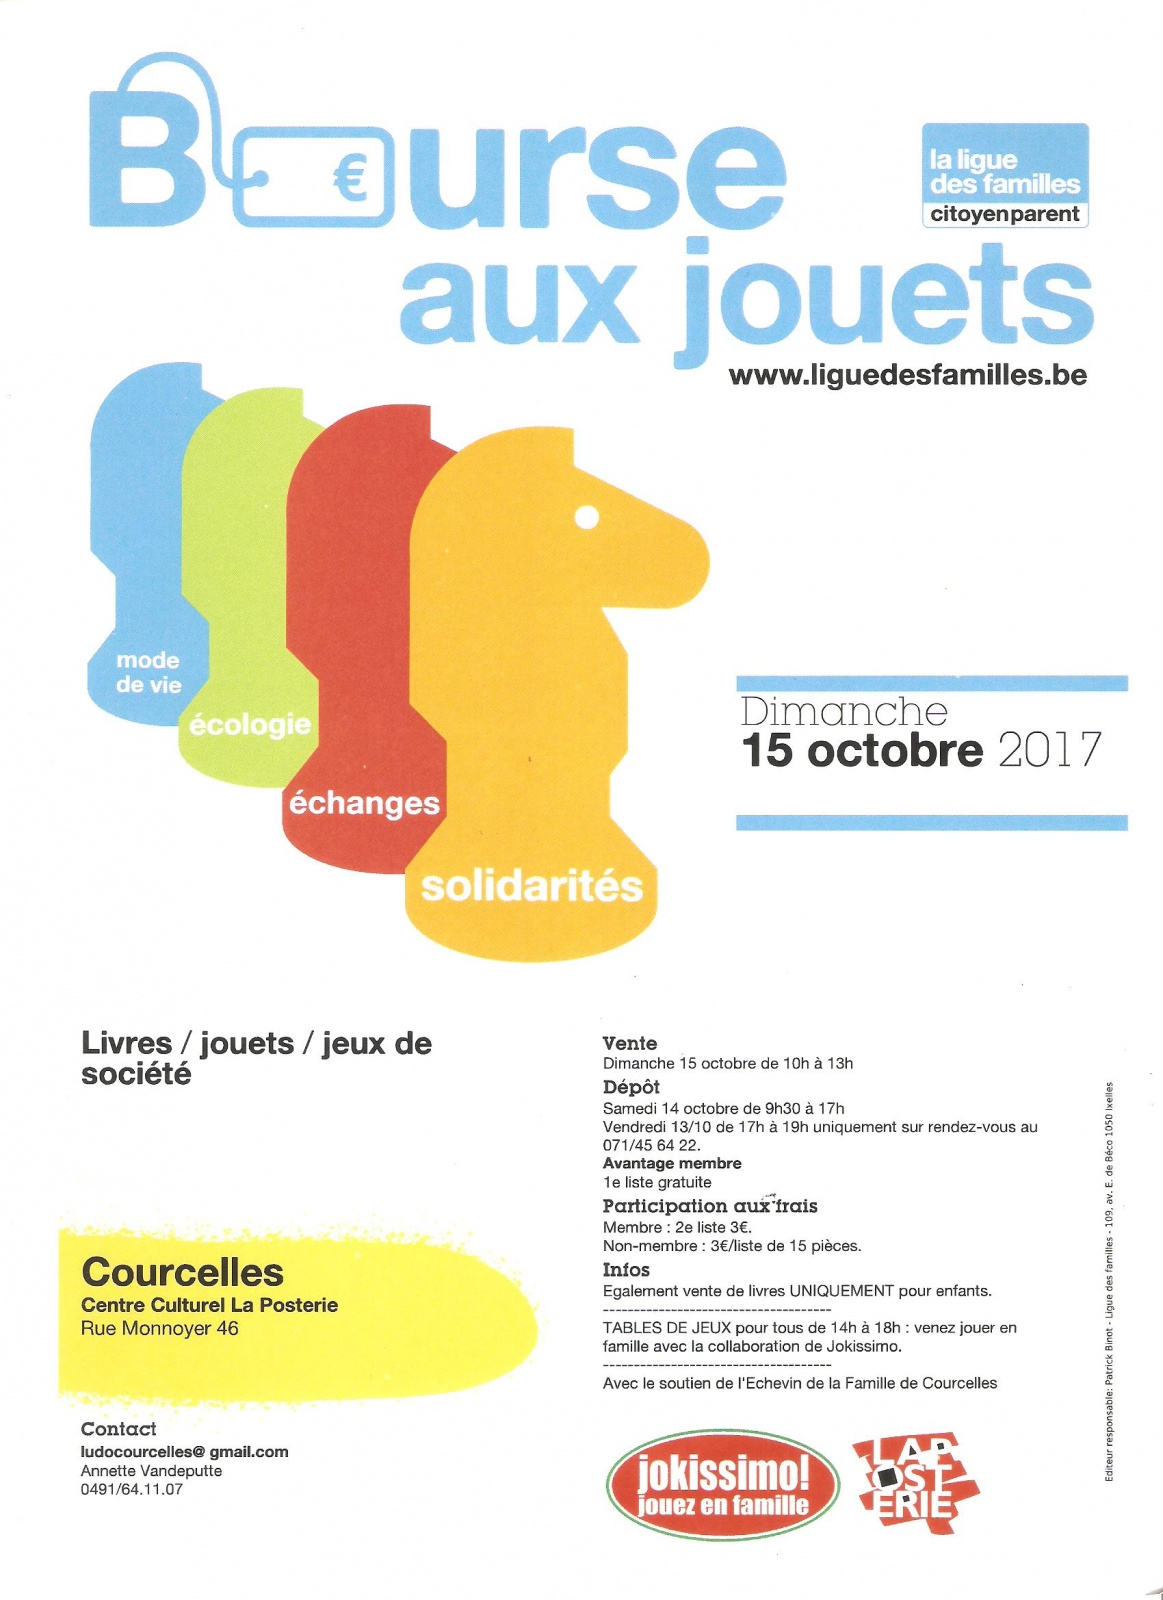 rencontre contact courcelles